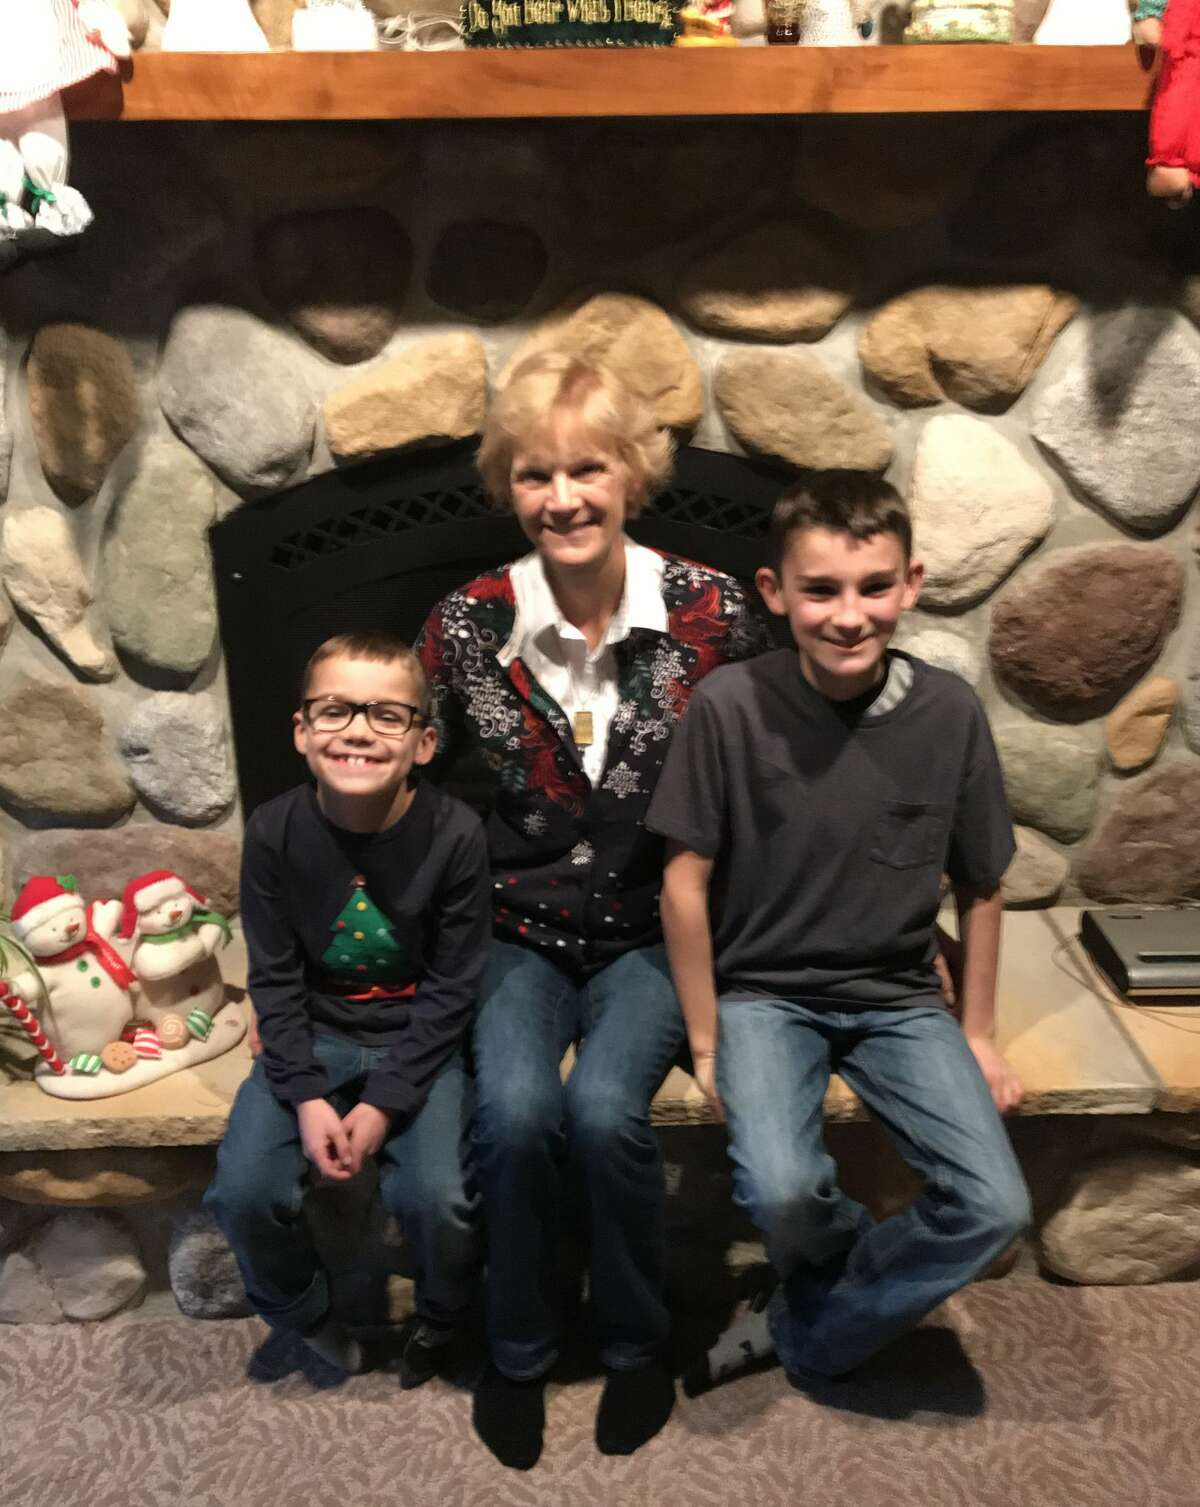 Carol Worch, of Manistee, with her grandsons - Brantley Worch, 8, and Kaden 13. (Courtesy photo)